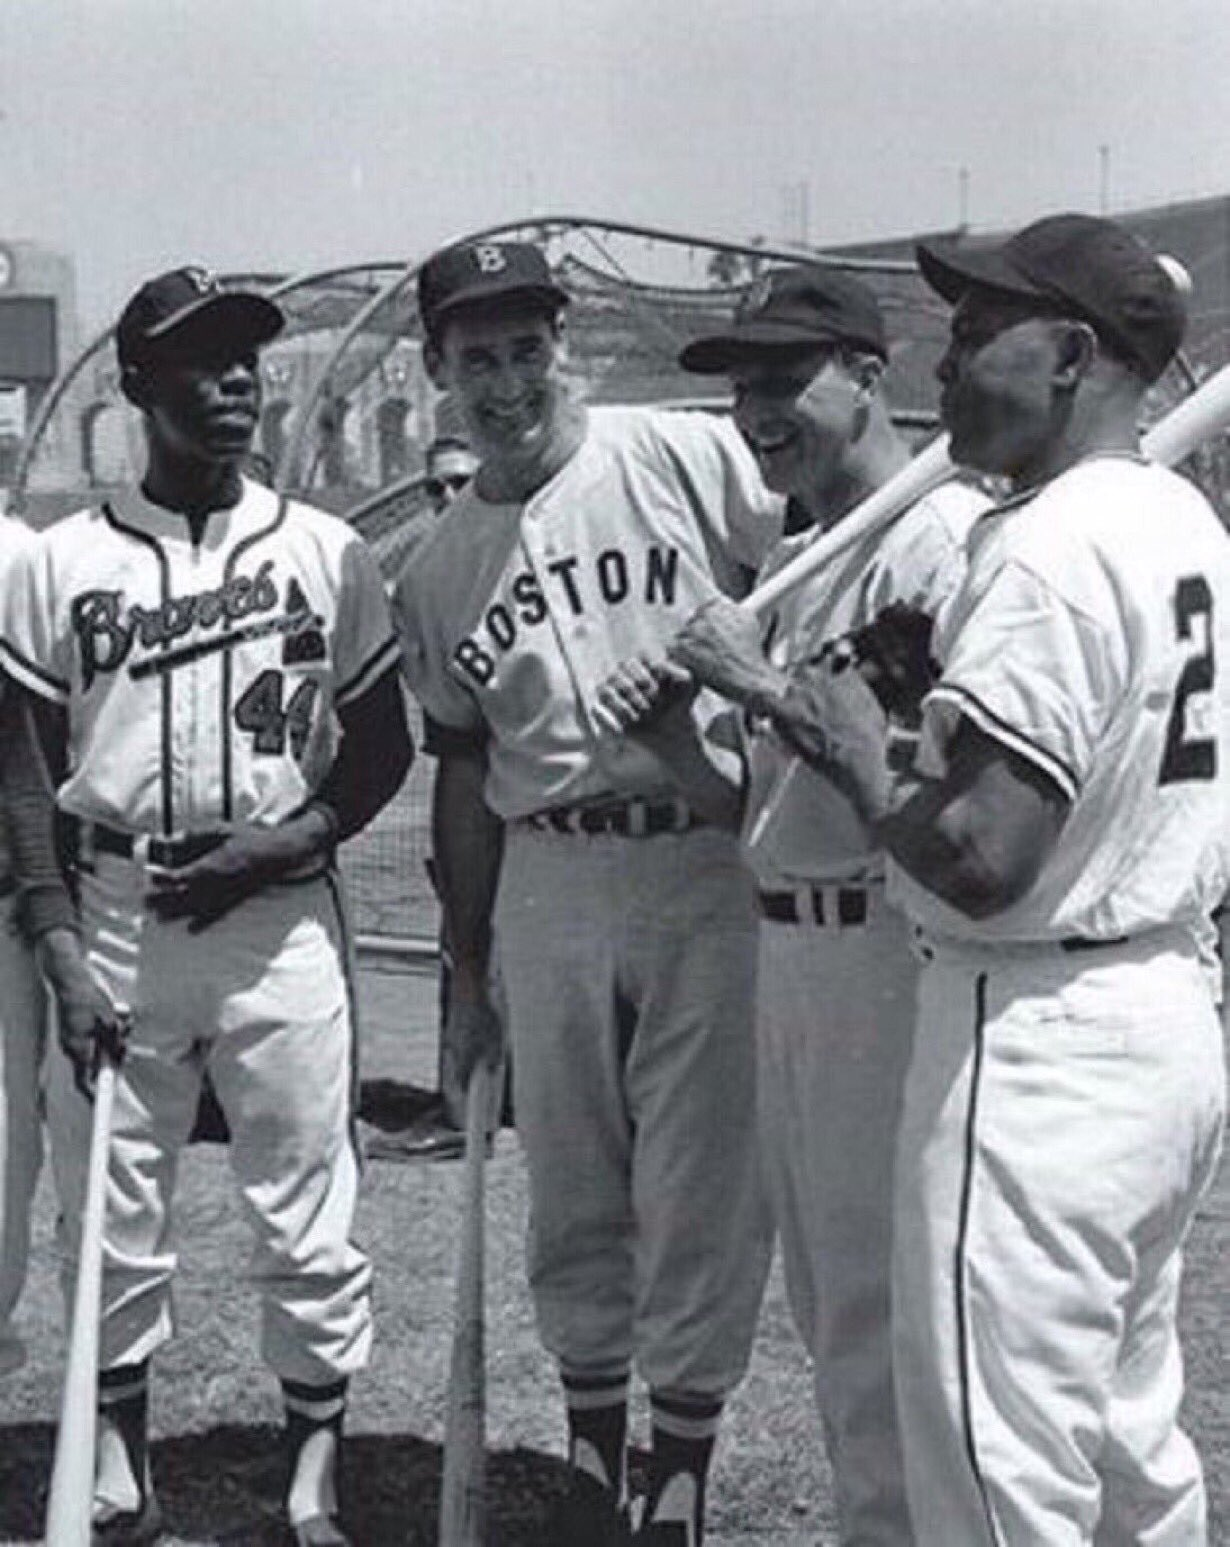 """Old Days""Baseball Royalty:Hank Aaron,Ted Williams,Stan Musial and Willie Mays meet before the 1959 All Star Game in Los Angeles.#Braves #RedSox #STLCards #SFGiants ⁠ ⁠#1950s #HOF https://t.co/HB0Mc4FpGm"